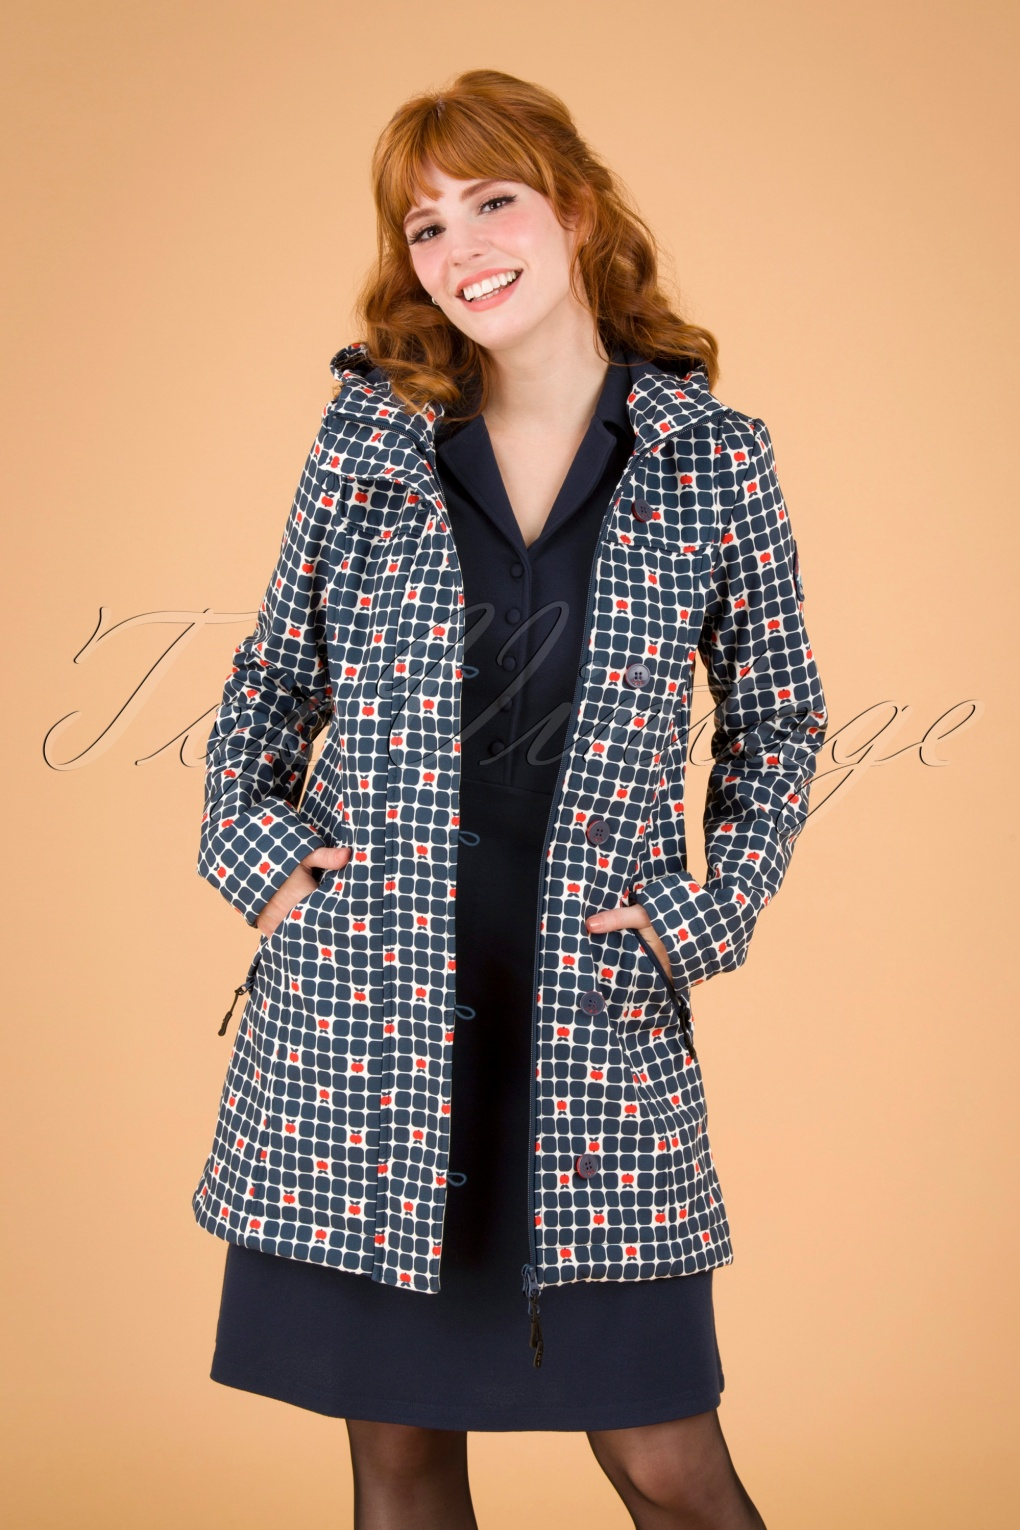 Vintage Coats & Jackets | Retro Coats and Jackets 60s Wild Weather Long Anorak in Apple Turnover Navy £137.57 AT vintagedancer.com